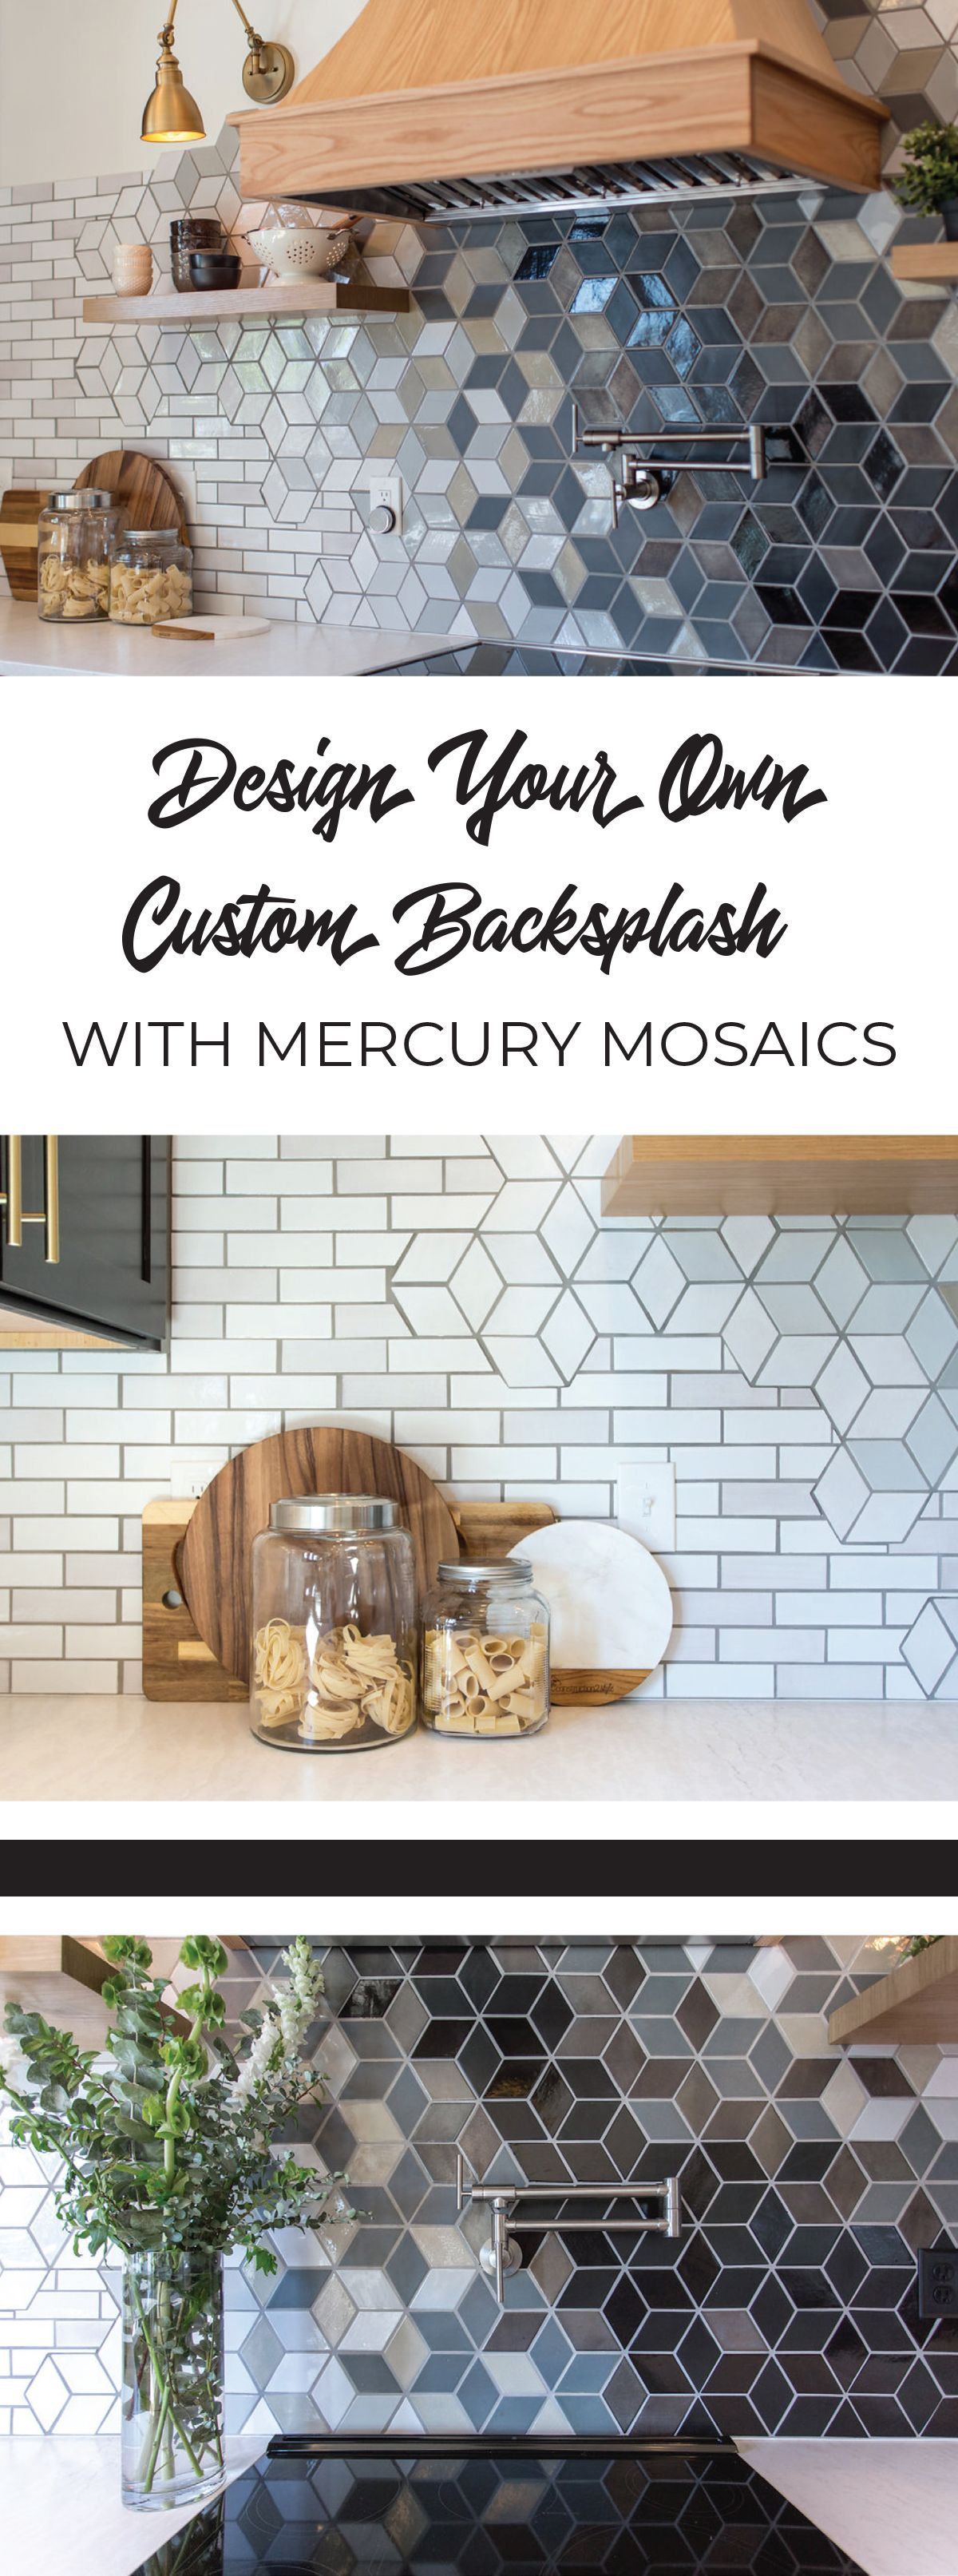 Miraculous Construction2Style Before After Kitchen Backsplash Interior Design Ideas Gentotryabchikinfo